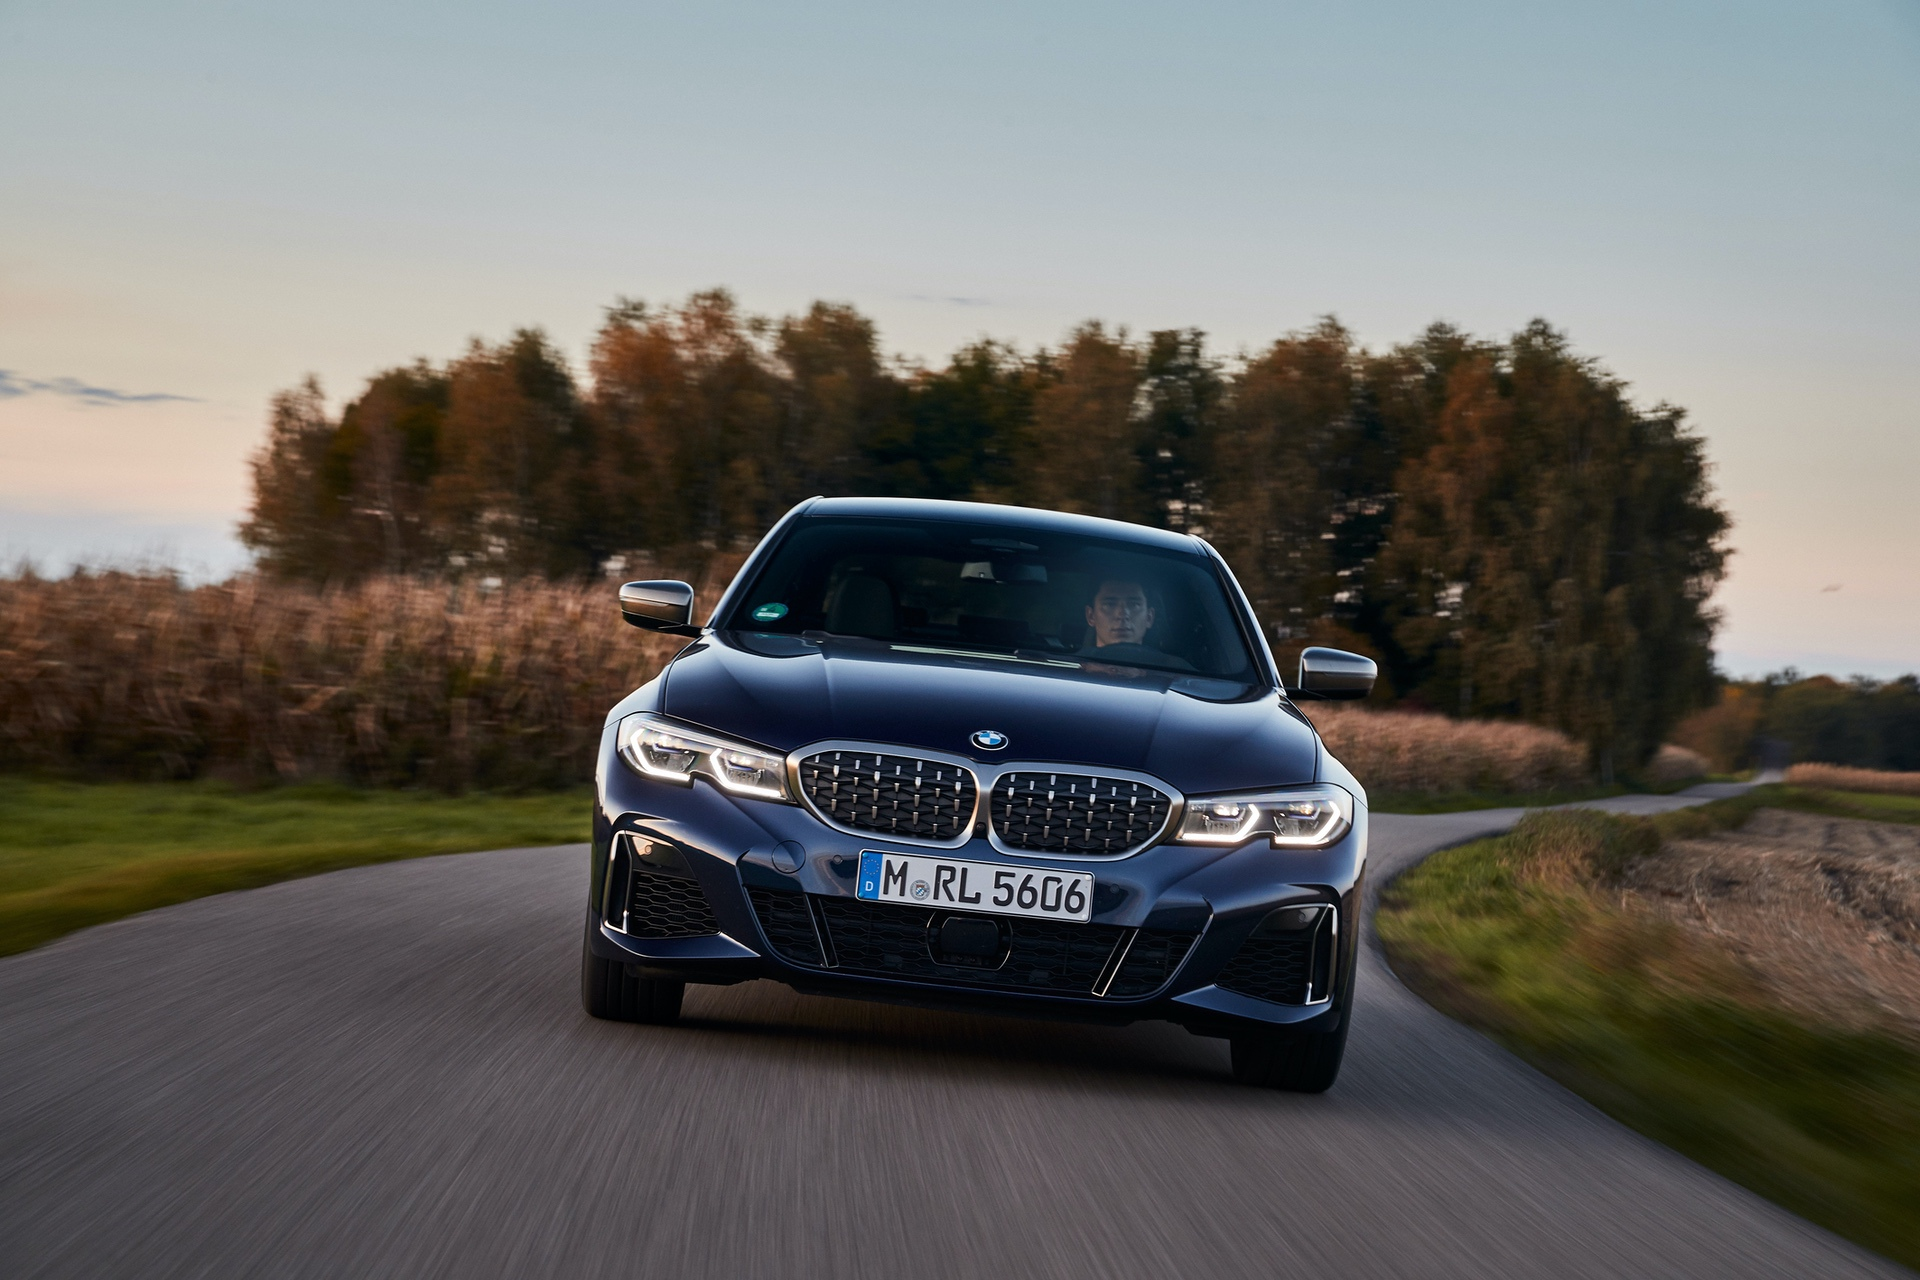 VIDEO: Let's Take a Walkaround of the BMW M340i xDrive